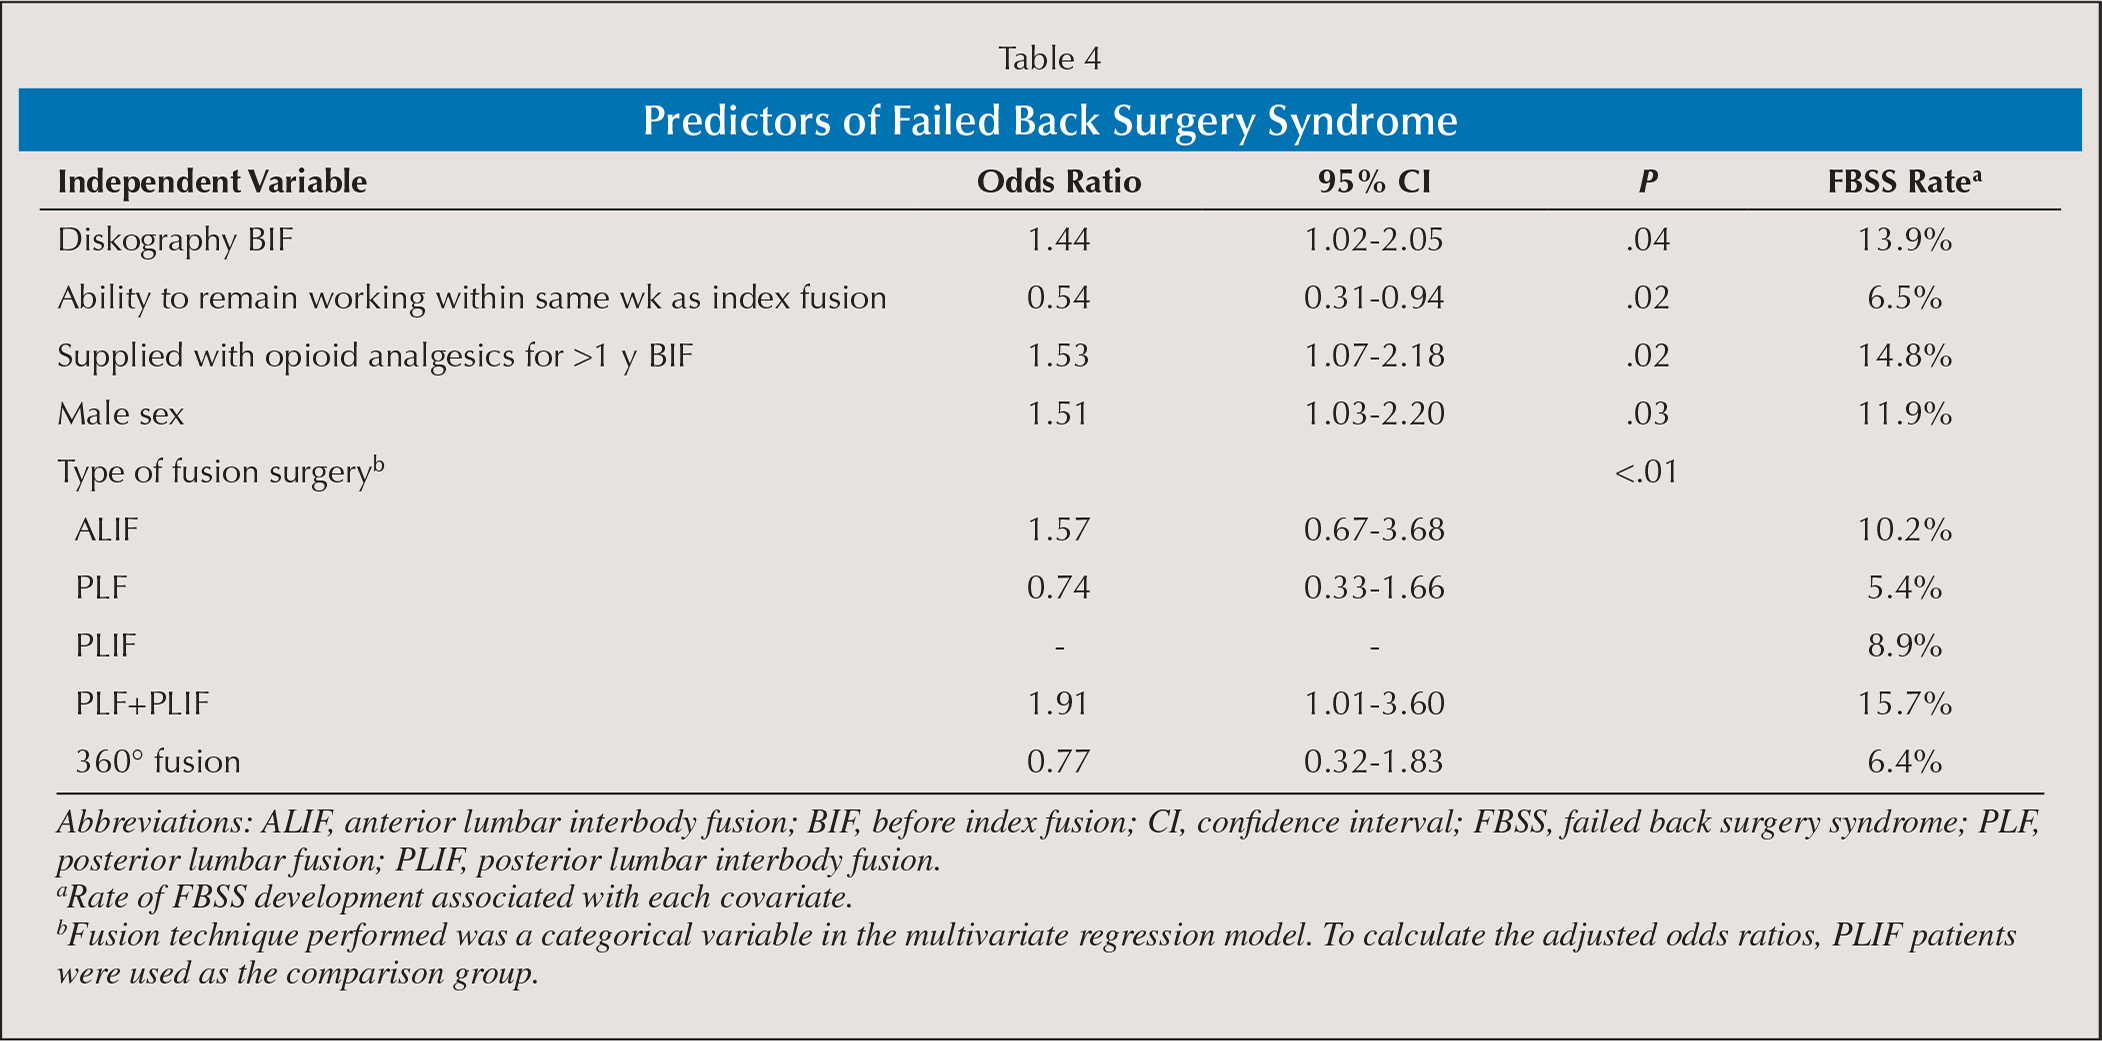 Predictors of Failed Back Surgery Syndrome